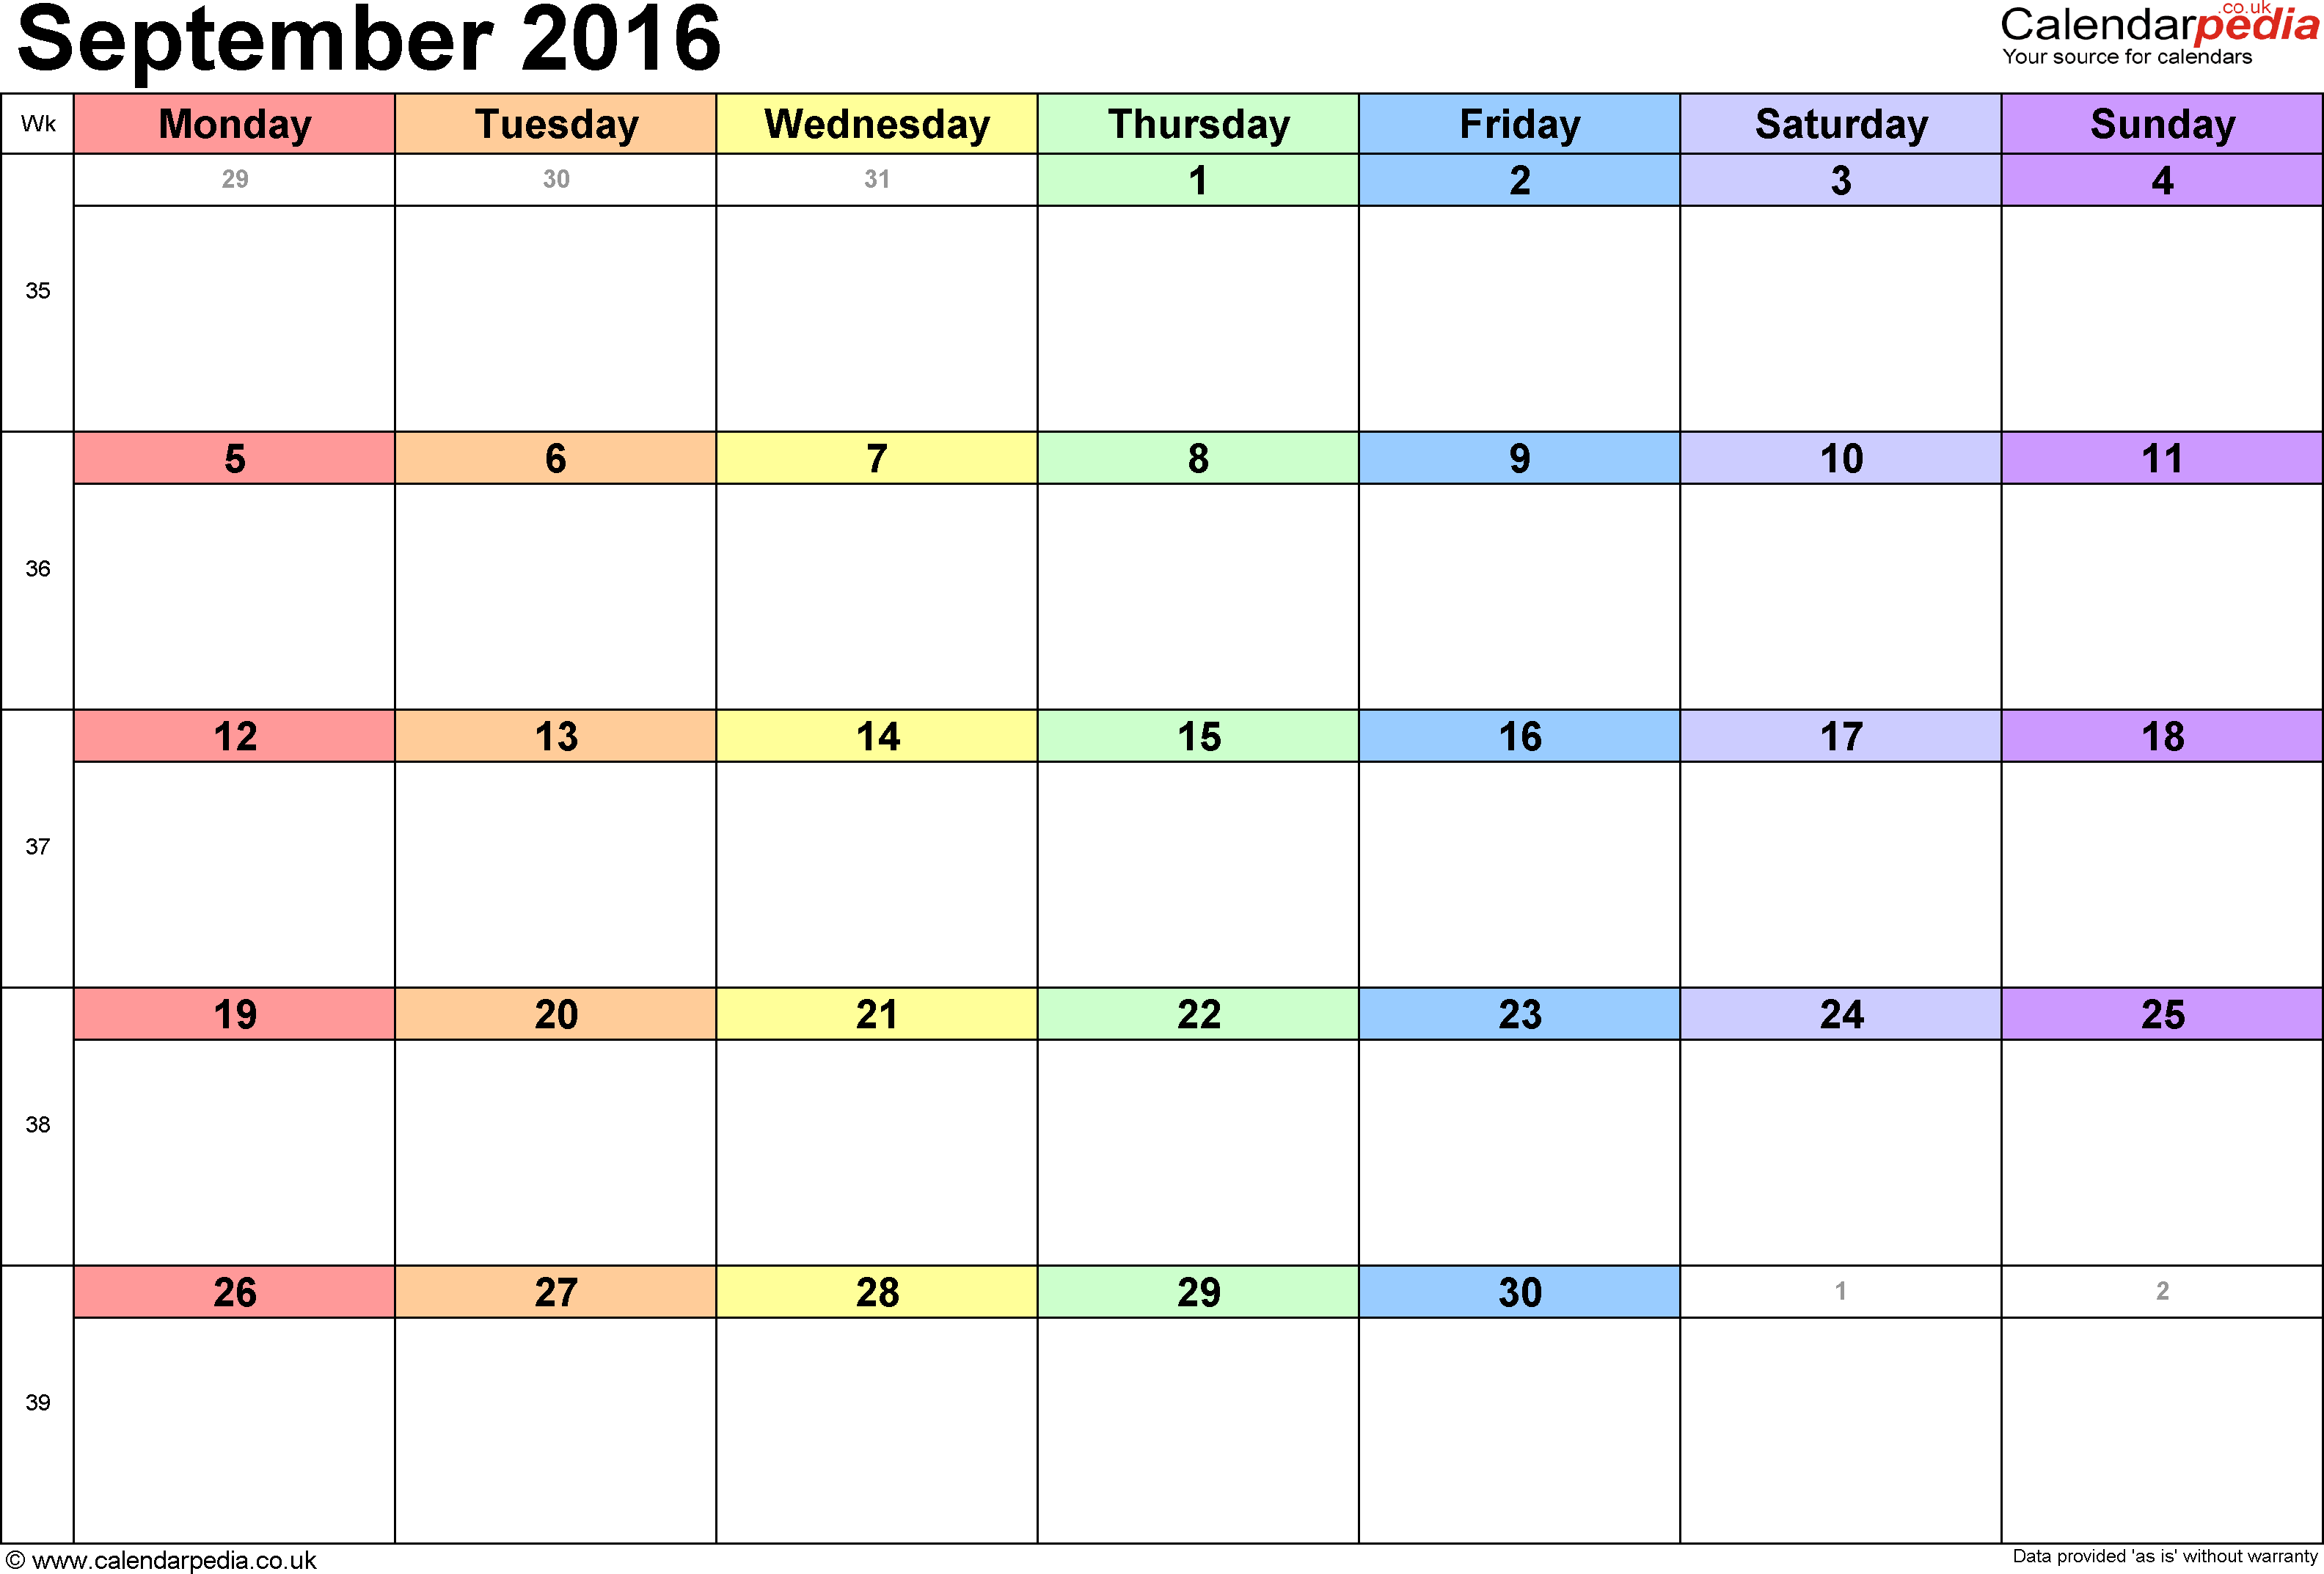 Calendar Planner September 2016 | Fotolip.Rich image and wallpaper